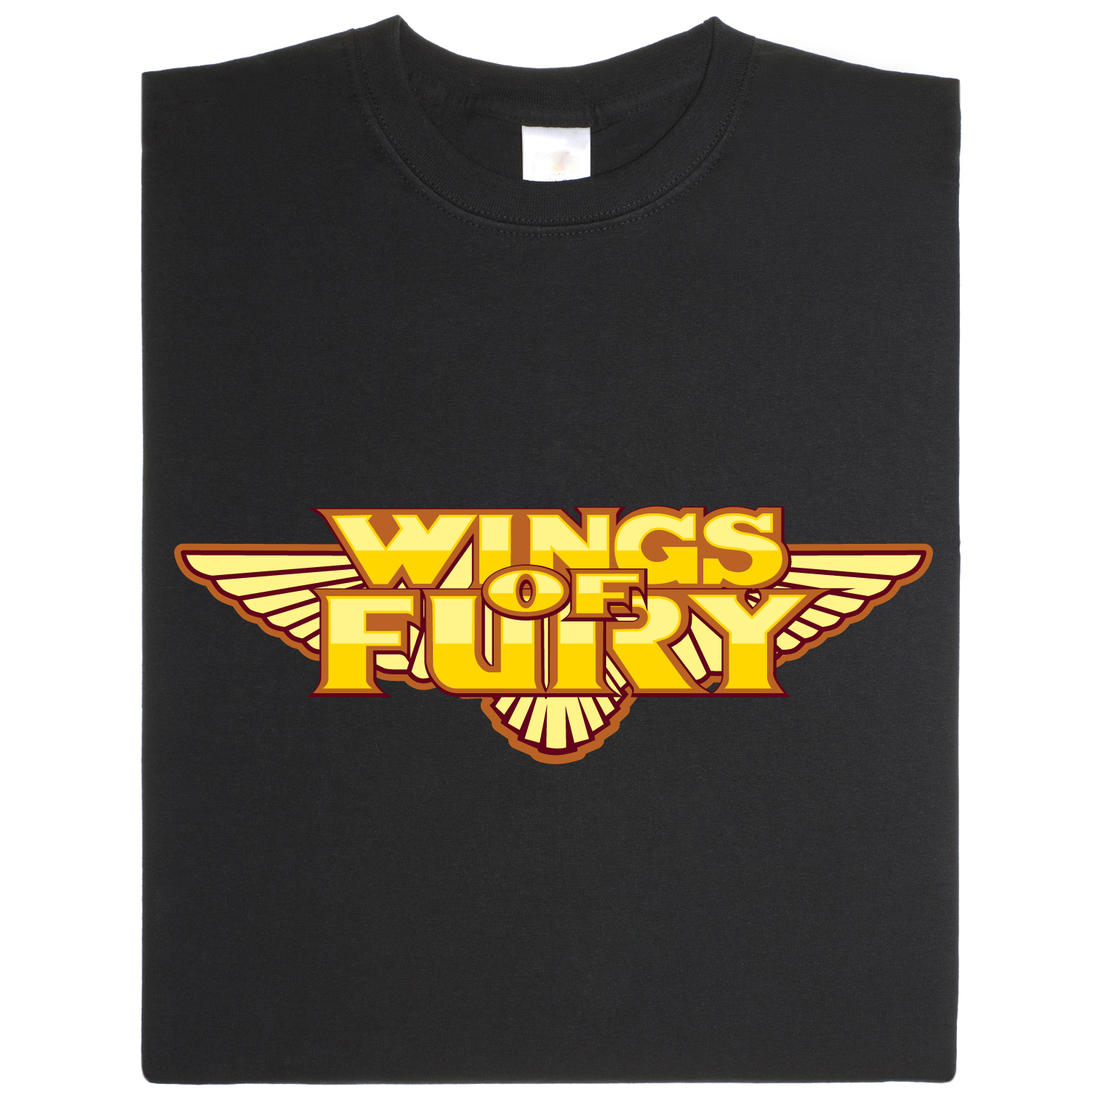 Wings of fury getdigital for Wings of fury